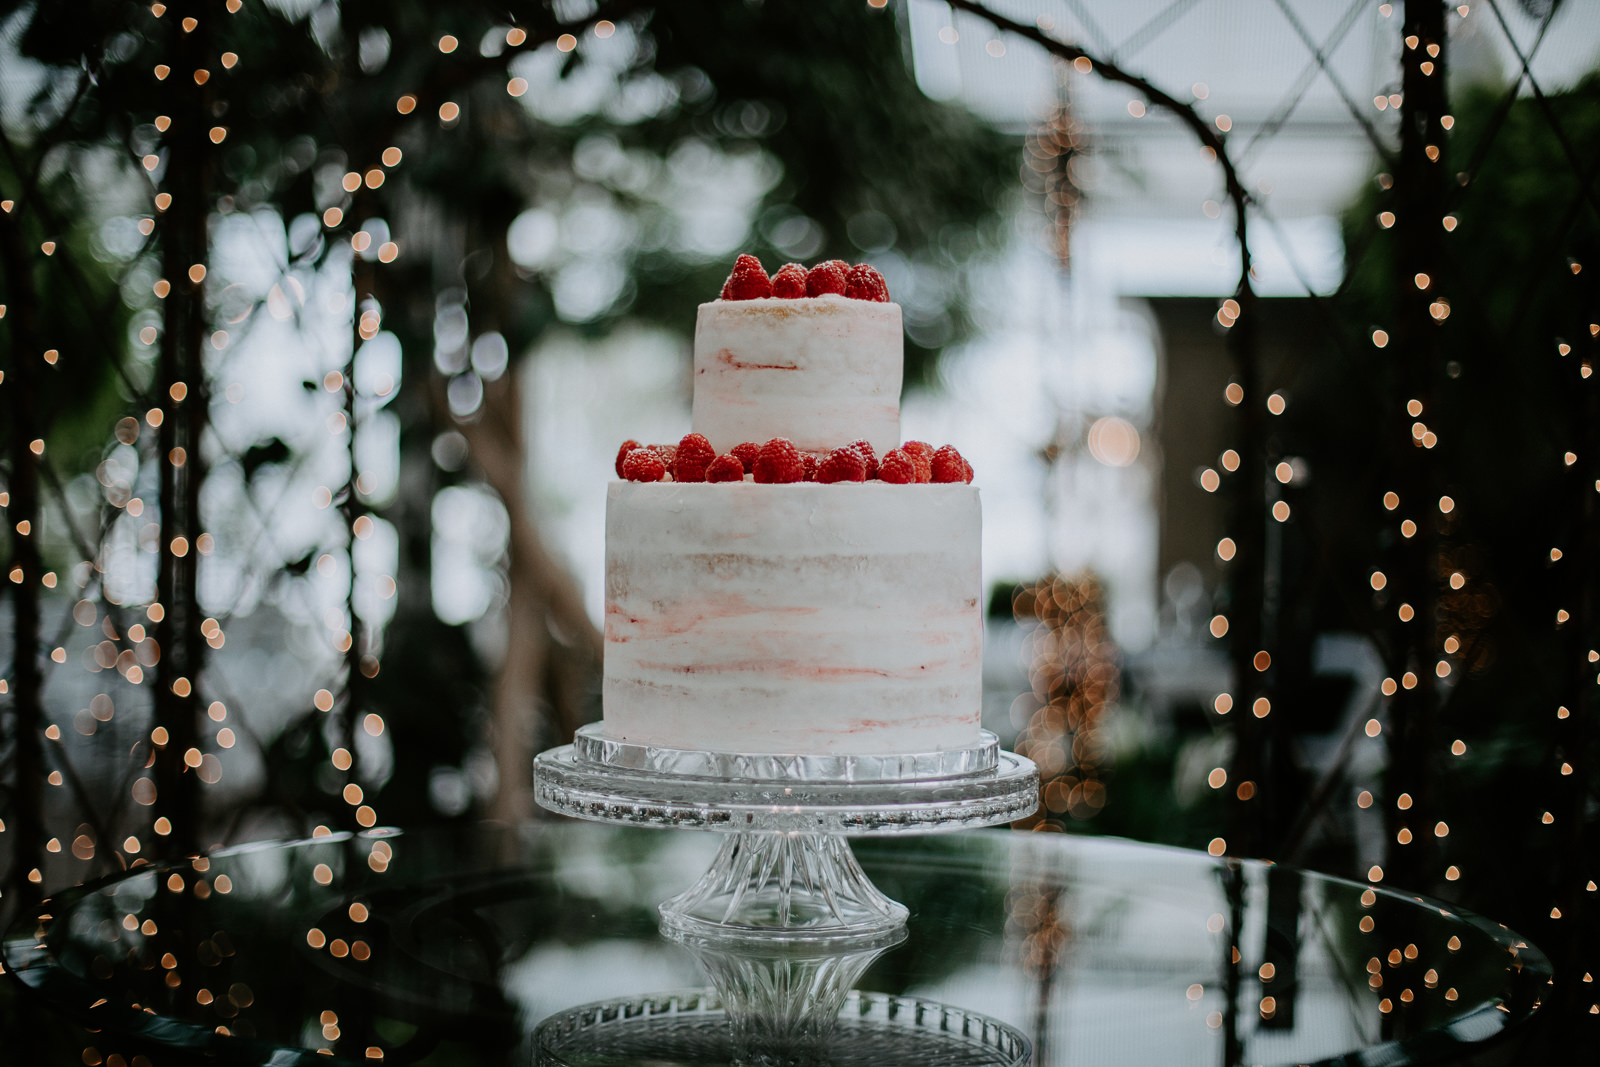 A white wedding cake adorned with raspberries on a glass table